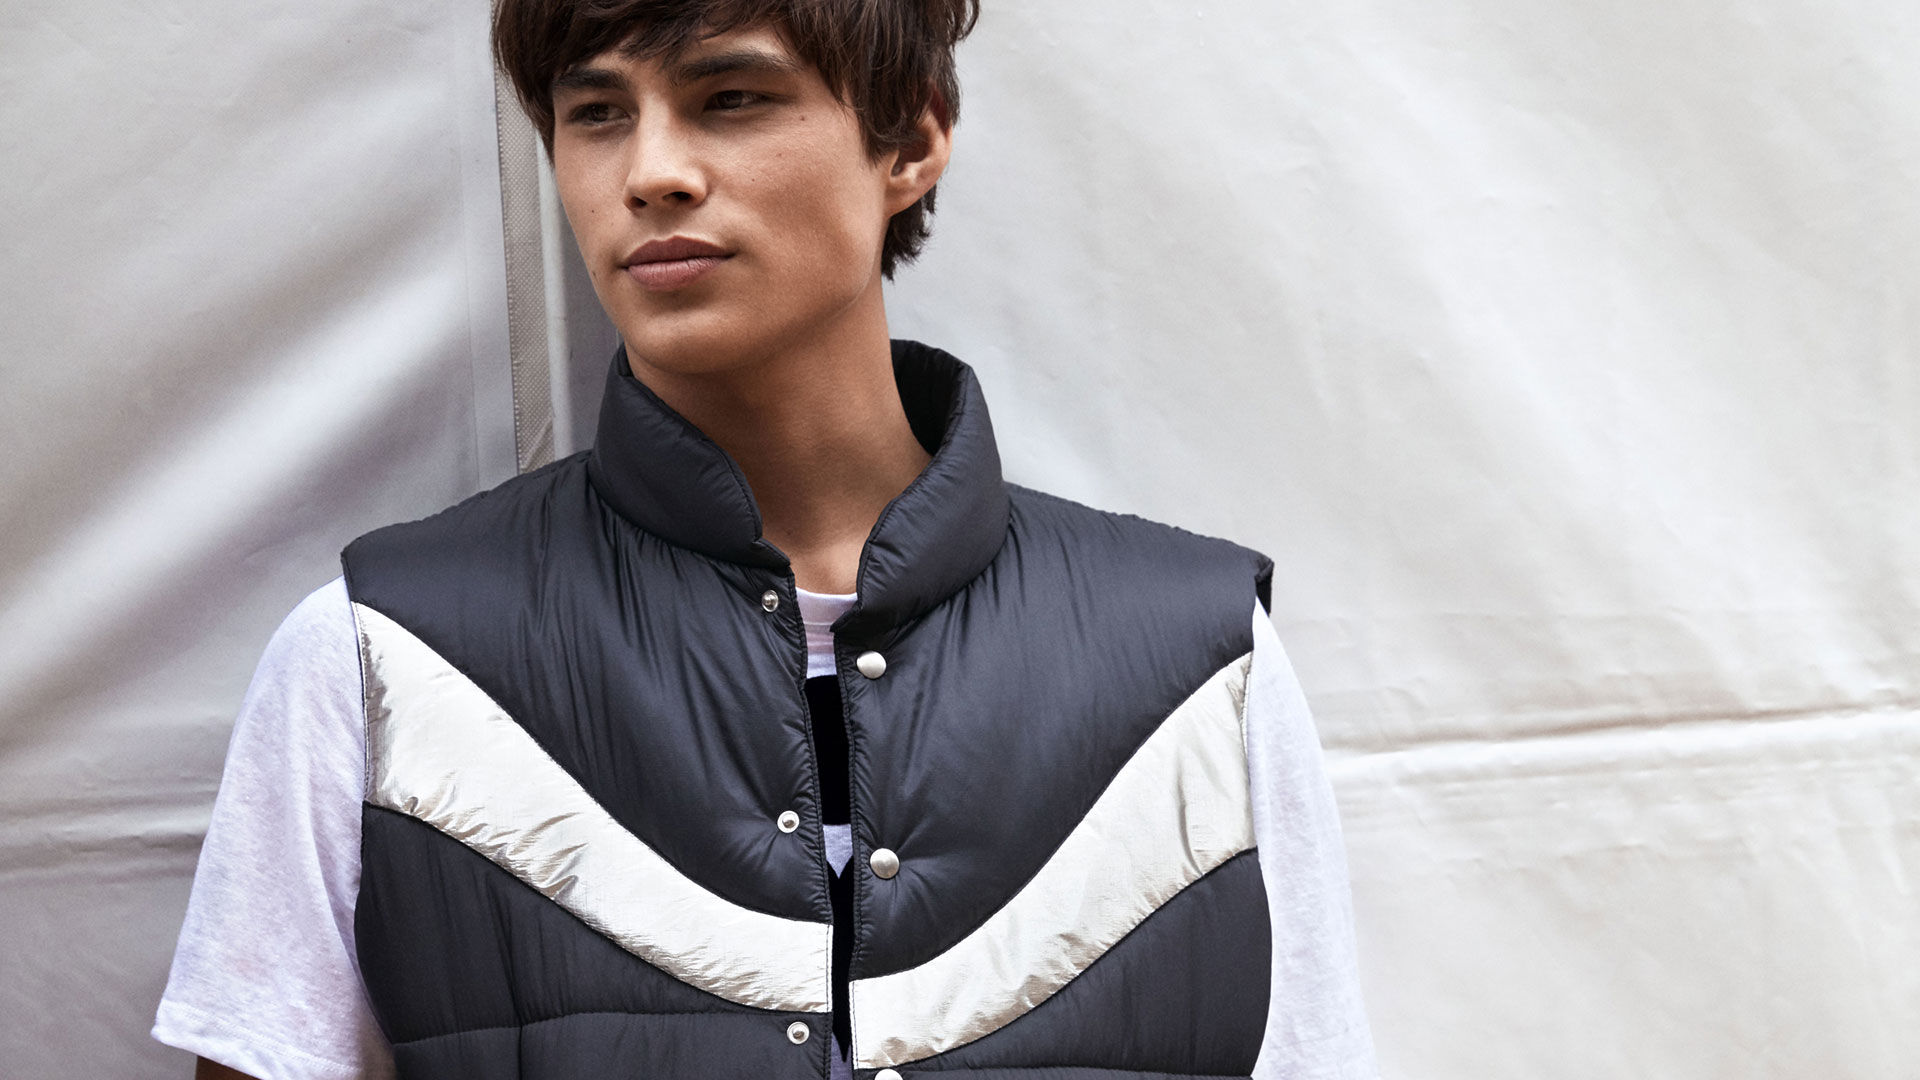 DREAM sleeveless puffer jacket